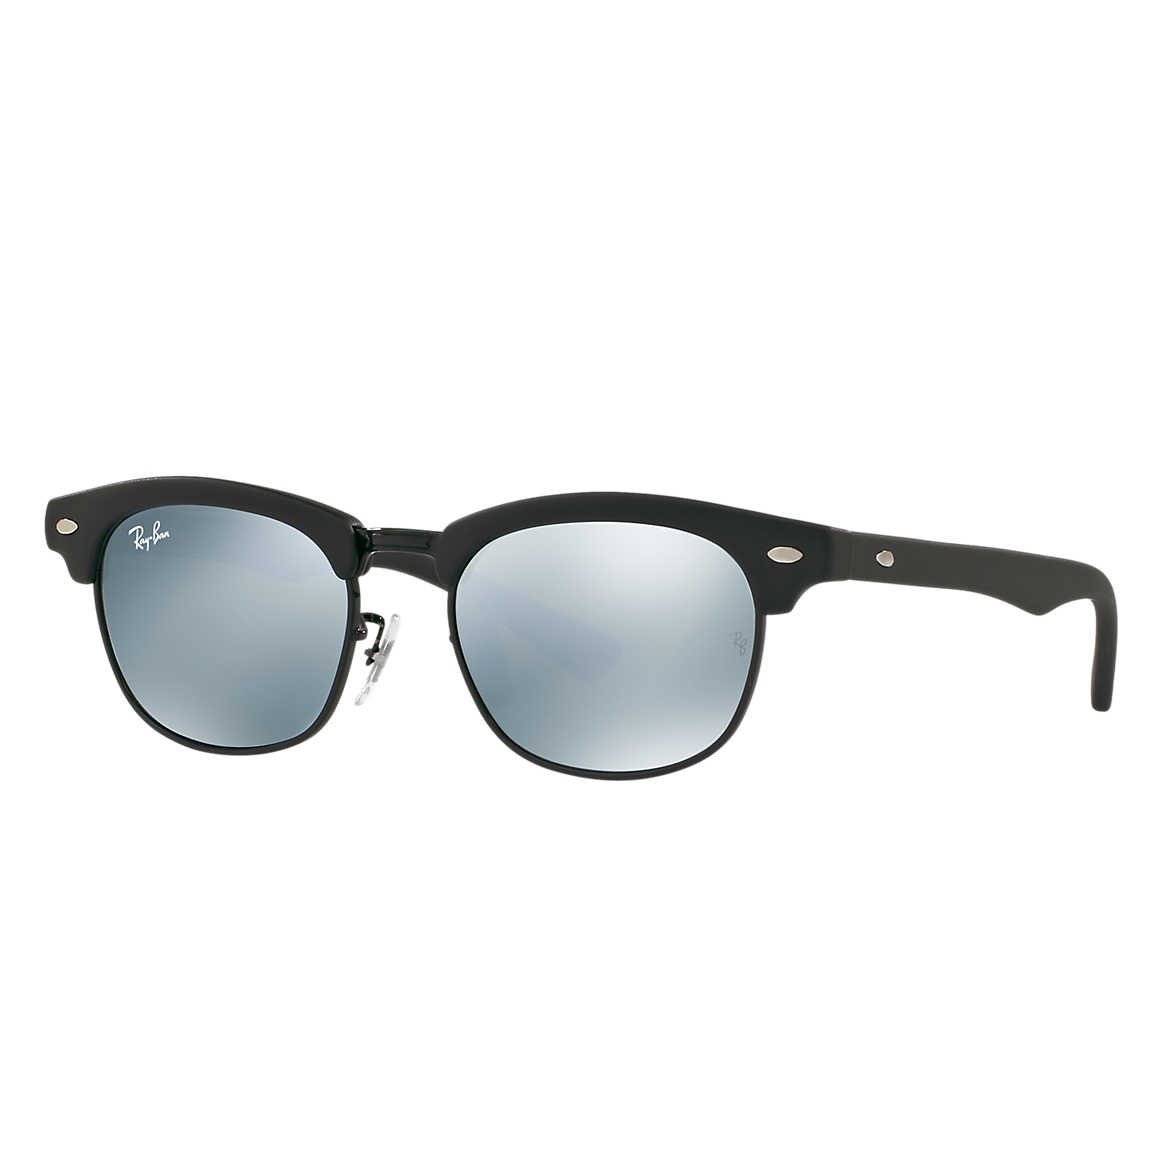 Ray-Ban Jr Clubmaster Sunglasses - Matte Black/Mirror Grey